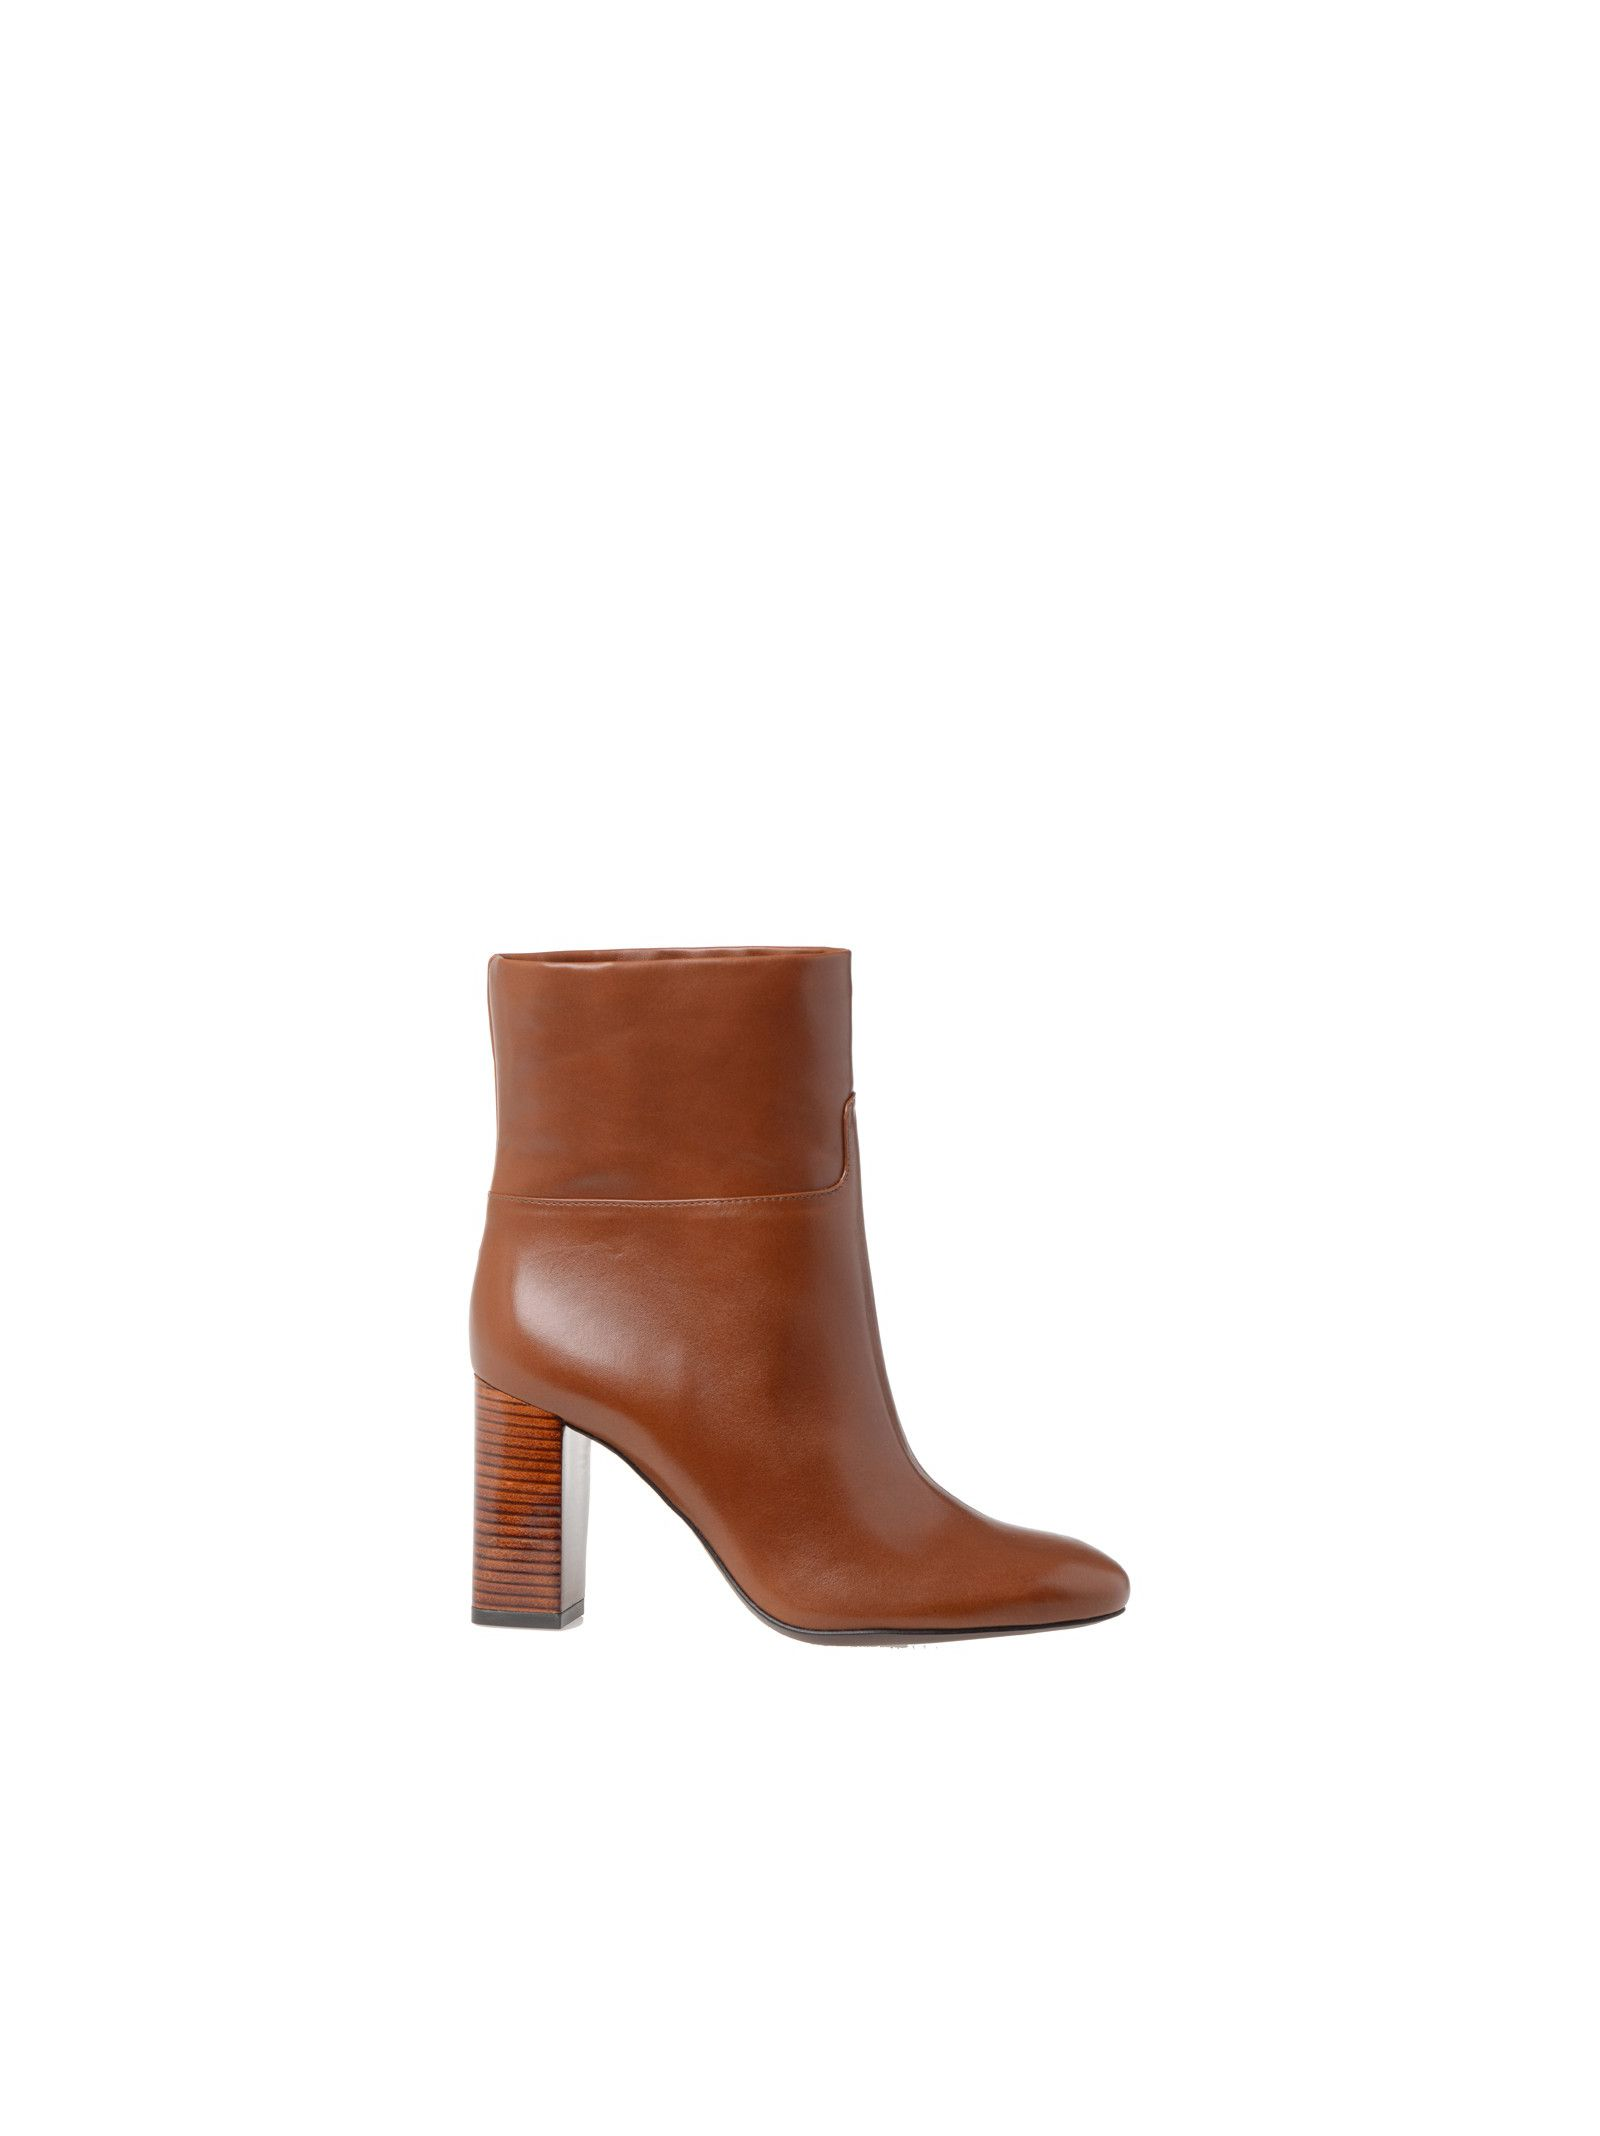 Leather boots Details: Leather upper, Leather interior, Chunky heel, Almond toe